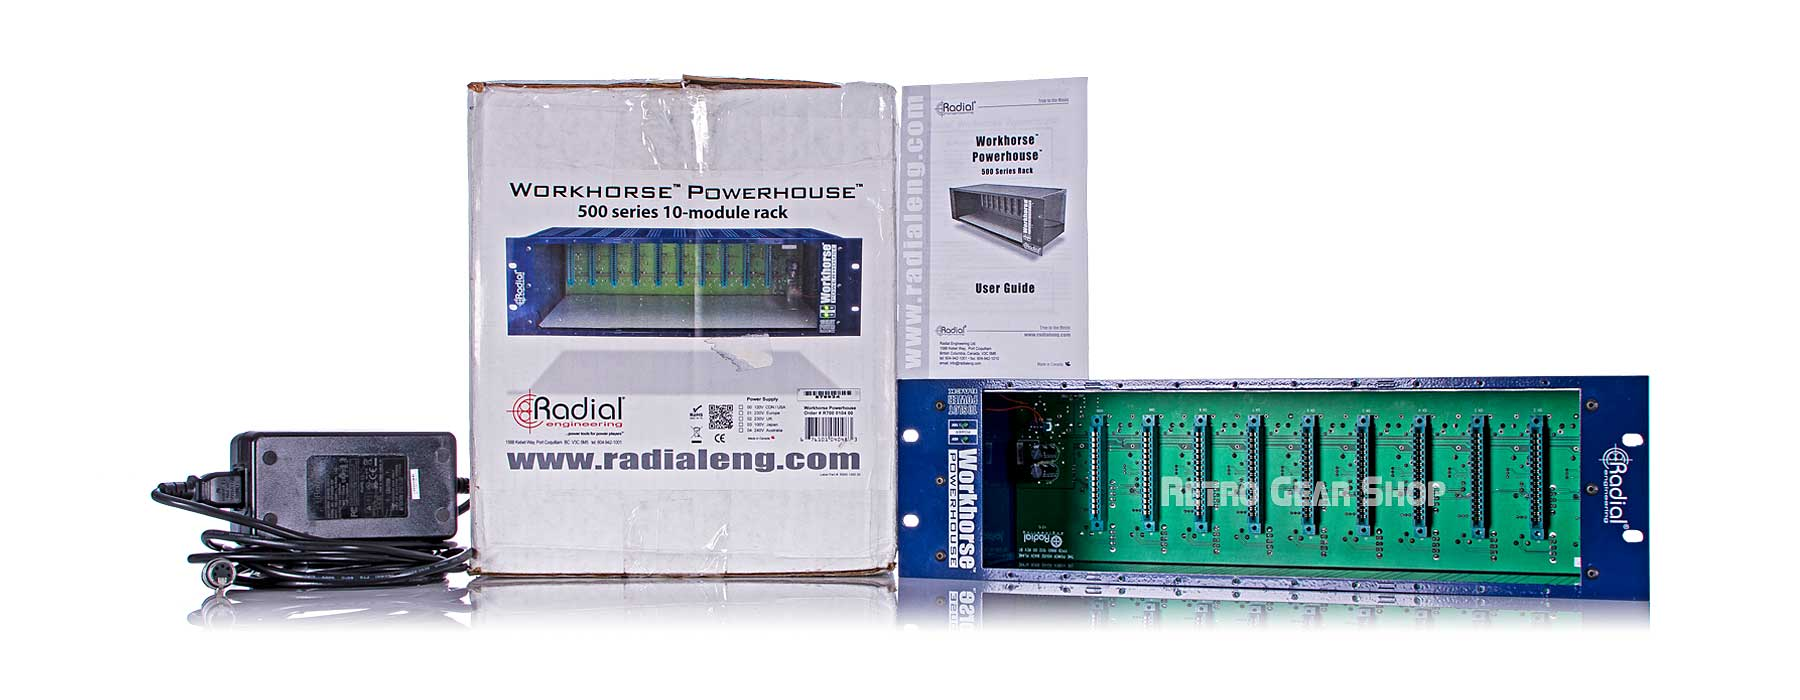 Radial Workhorse Powerhouse 10-Slot Box Power Supply User Guide